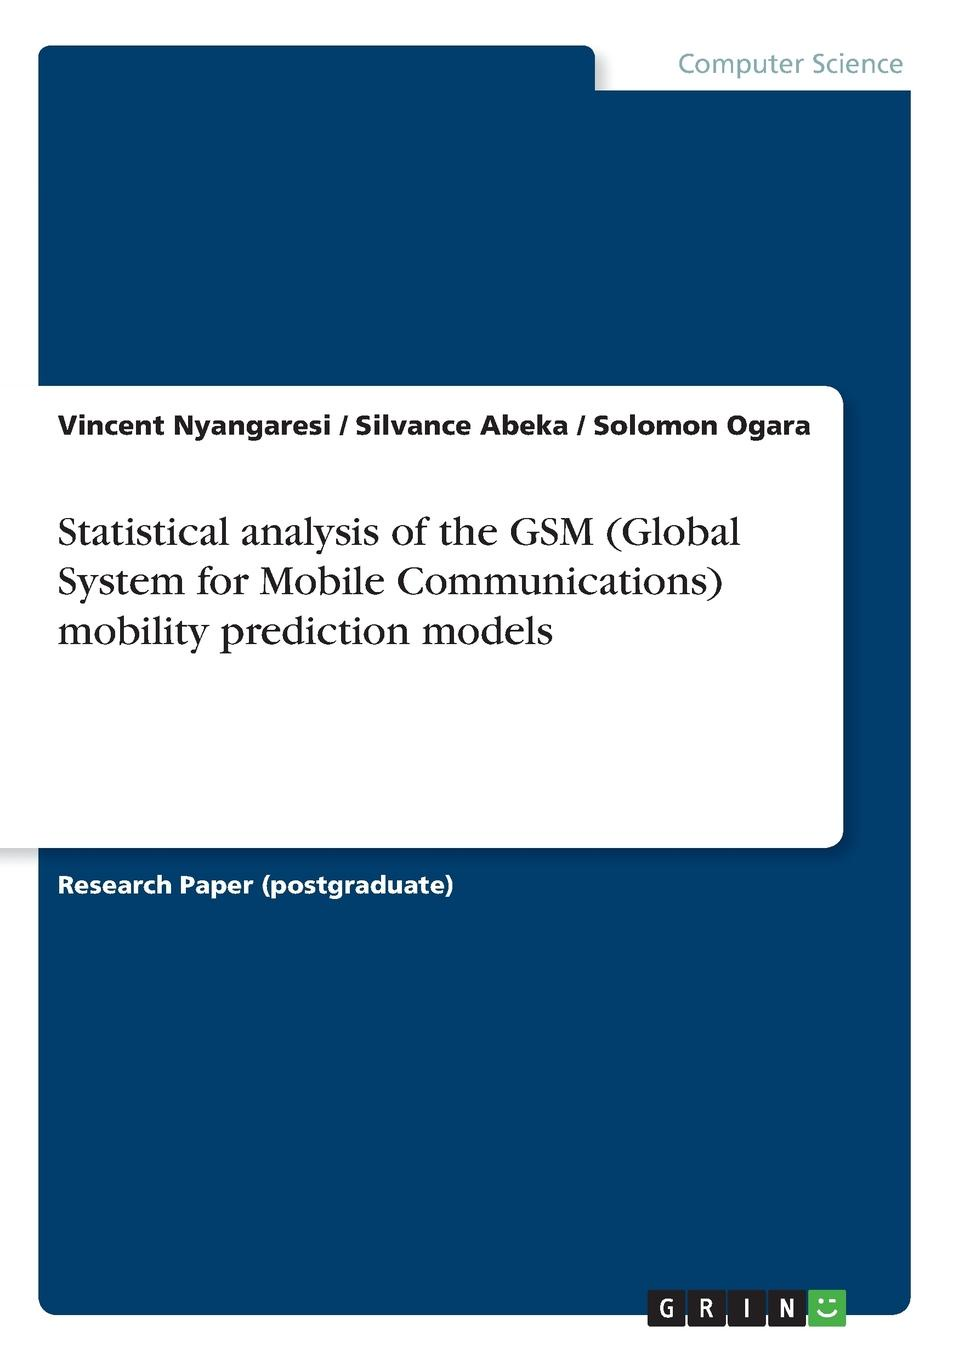 Vincent Nyangaresi, Silvance Abeka, Solomon Ogara Statistical analysis of the GSM (Global System for Mobile Communications) mobility prediction models gsm access control system by mobile phone sms operated opener rtu 5025 gsm alarm system